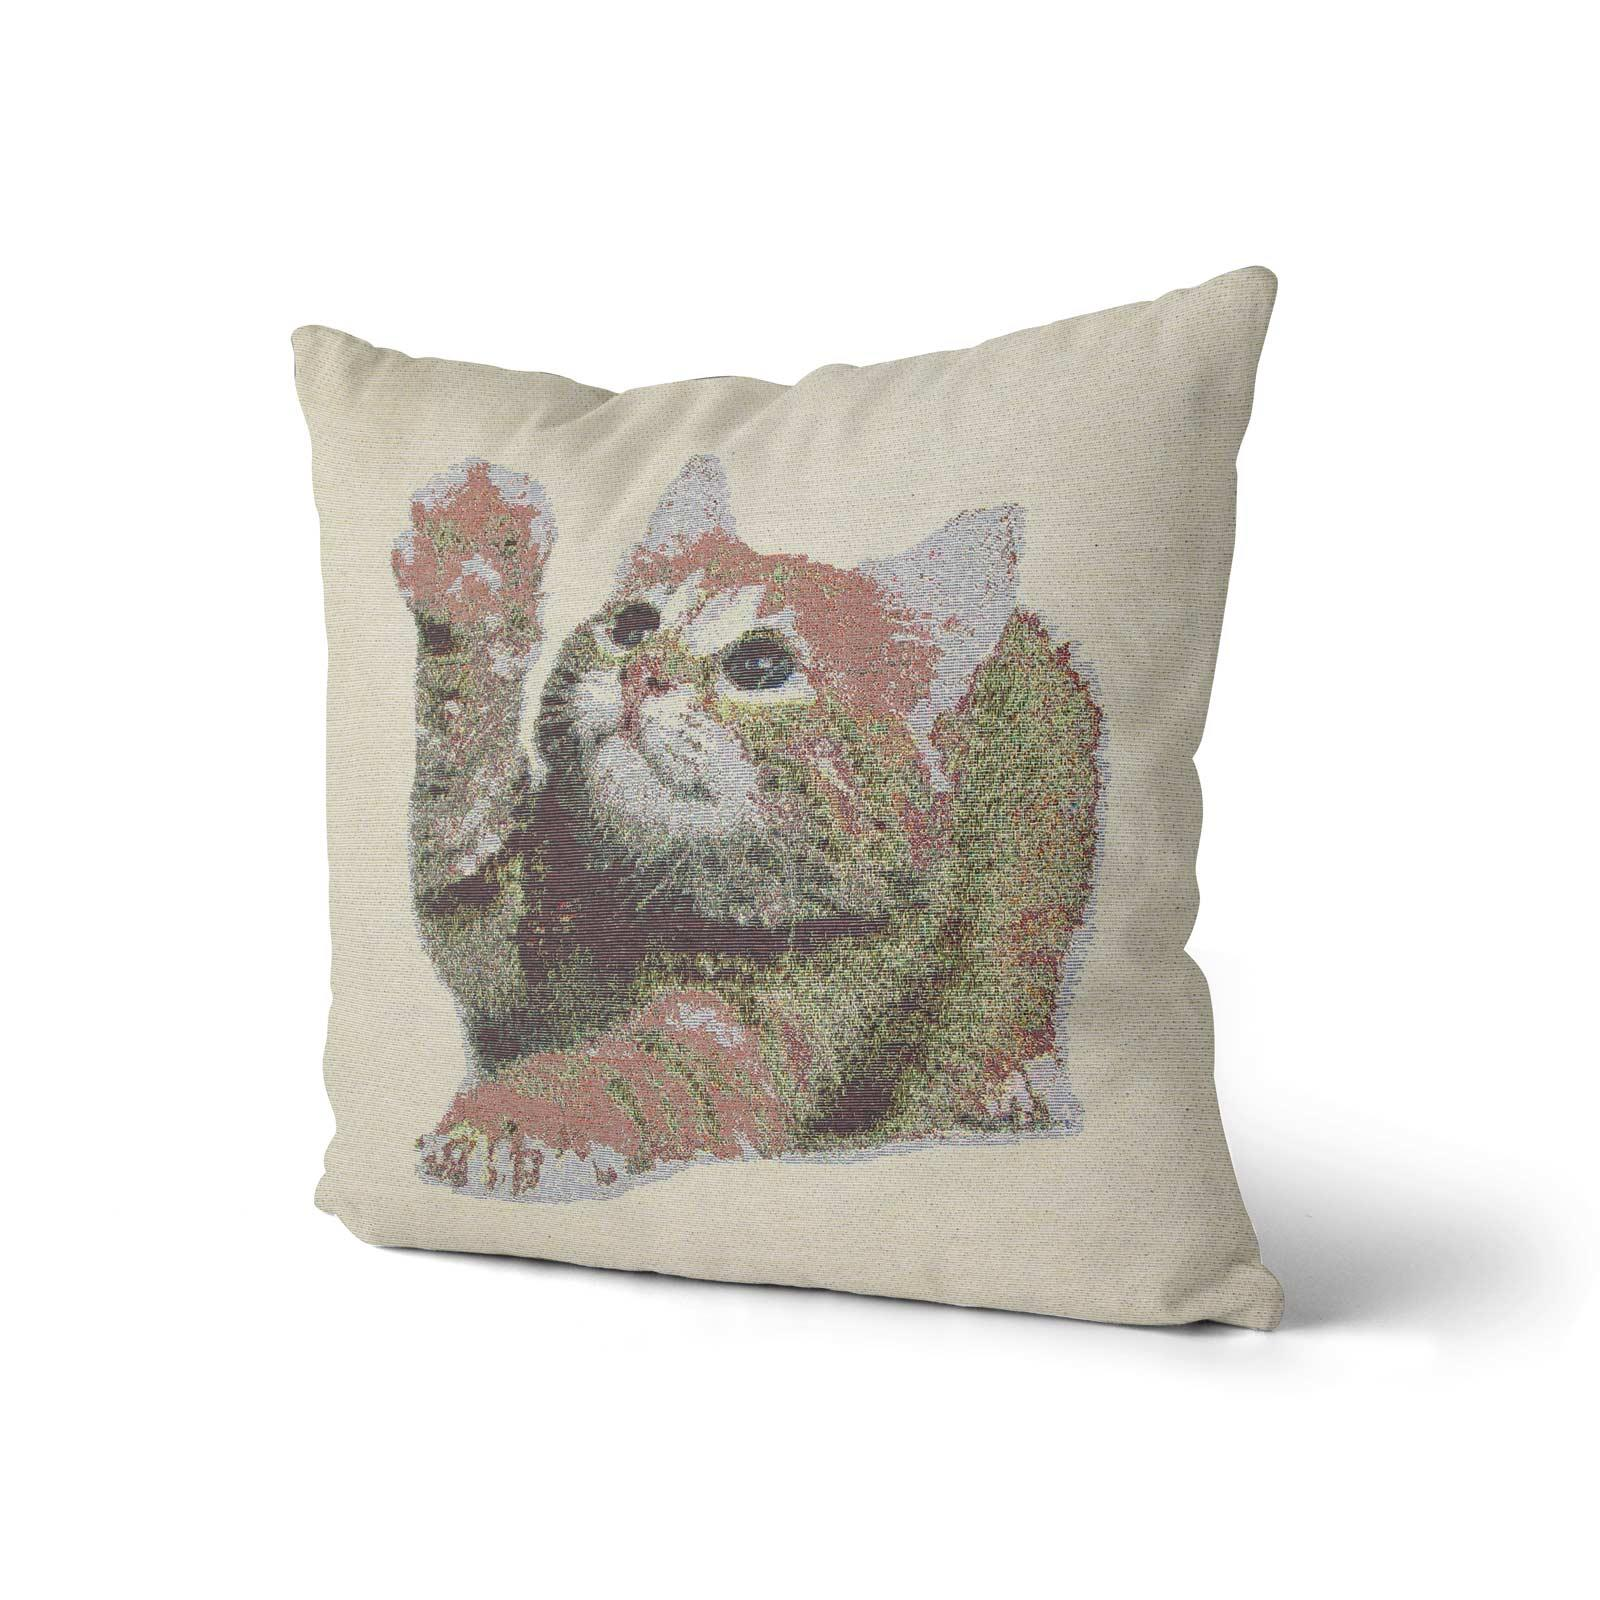 Tapestry-Cushion-Covers-Vintage-Pillow-Cover-Collection-18-034-45cm-Filled-Cushions thumbnail 94